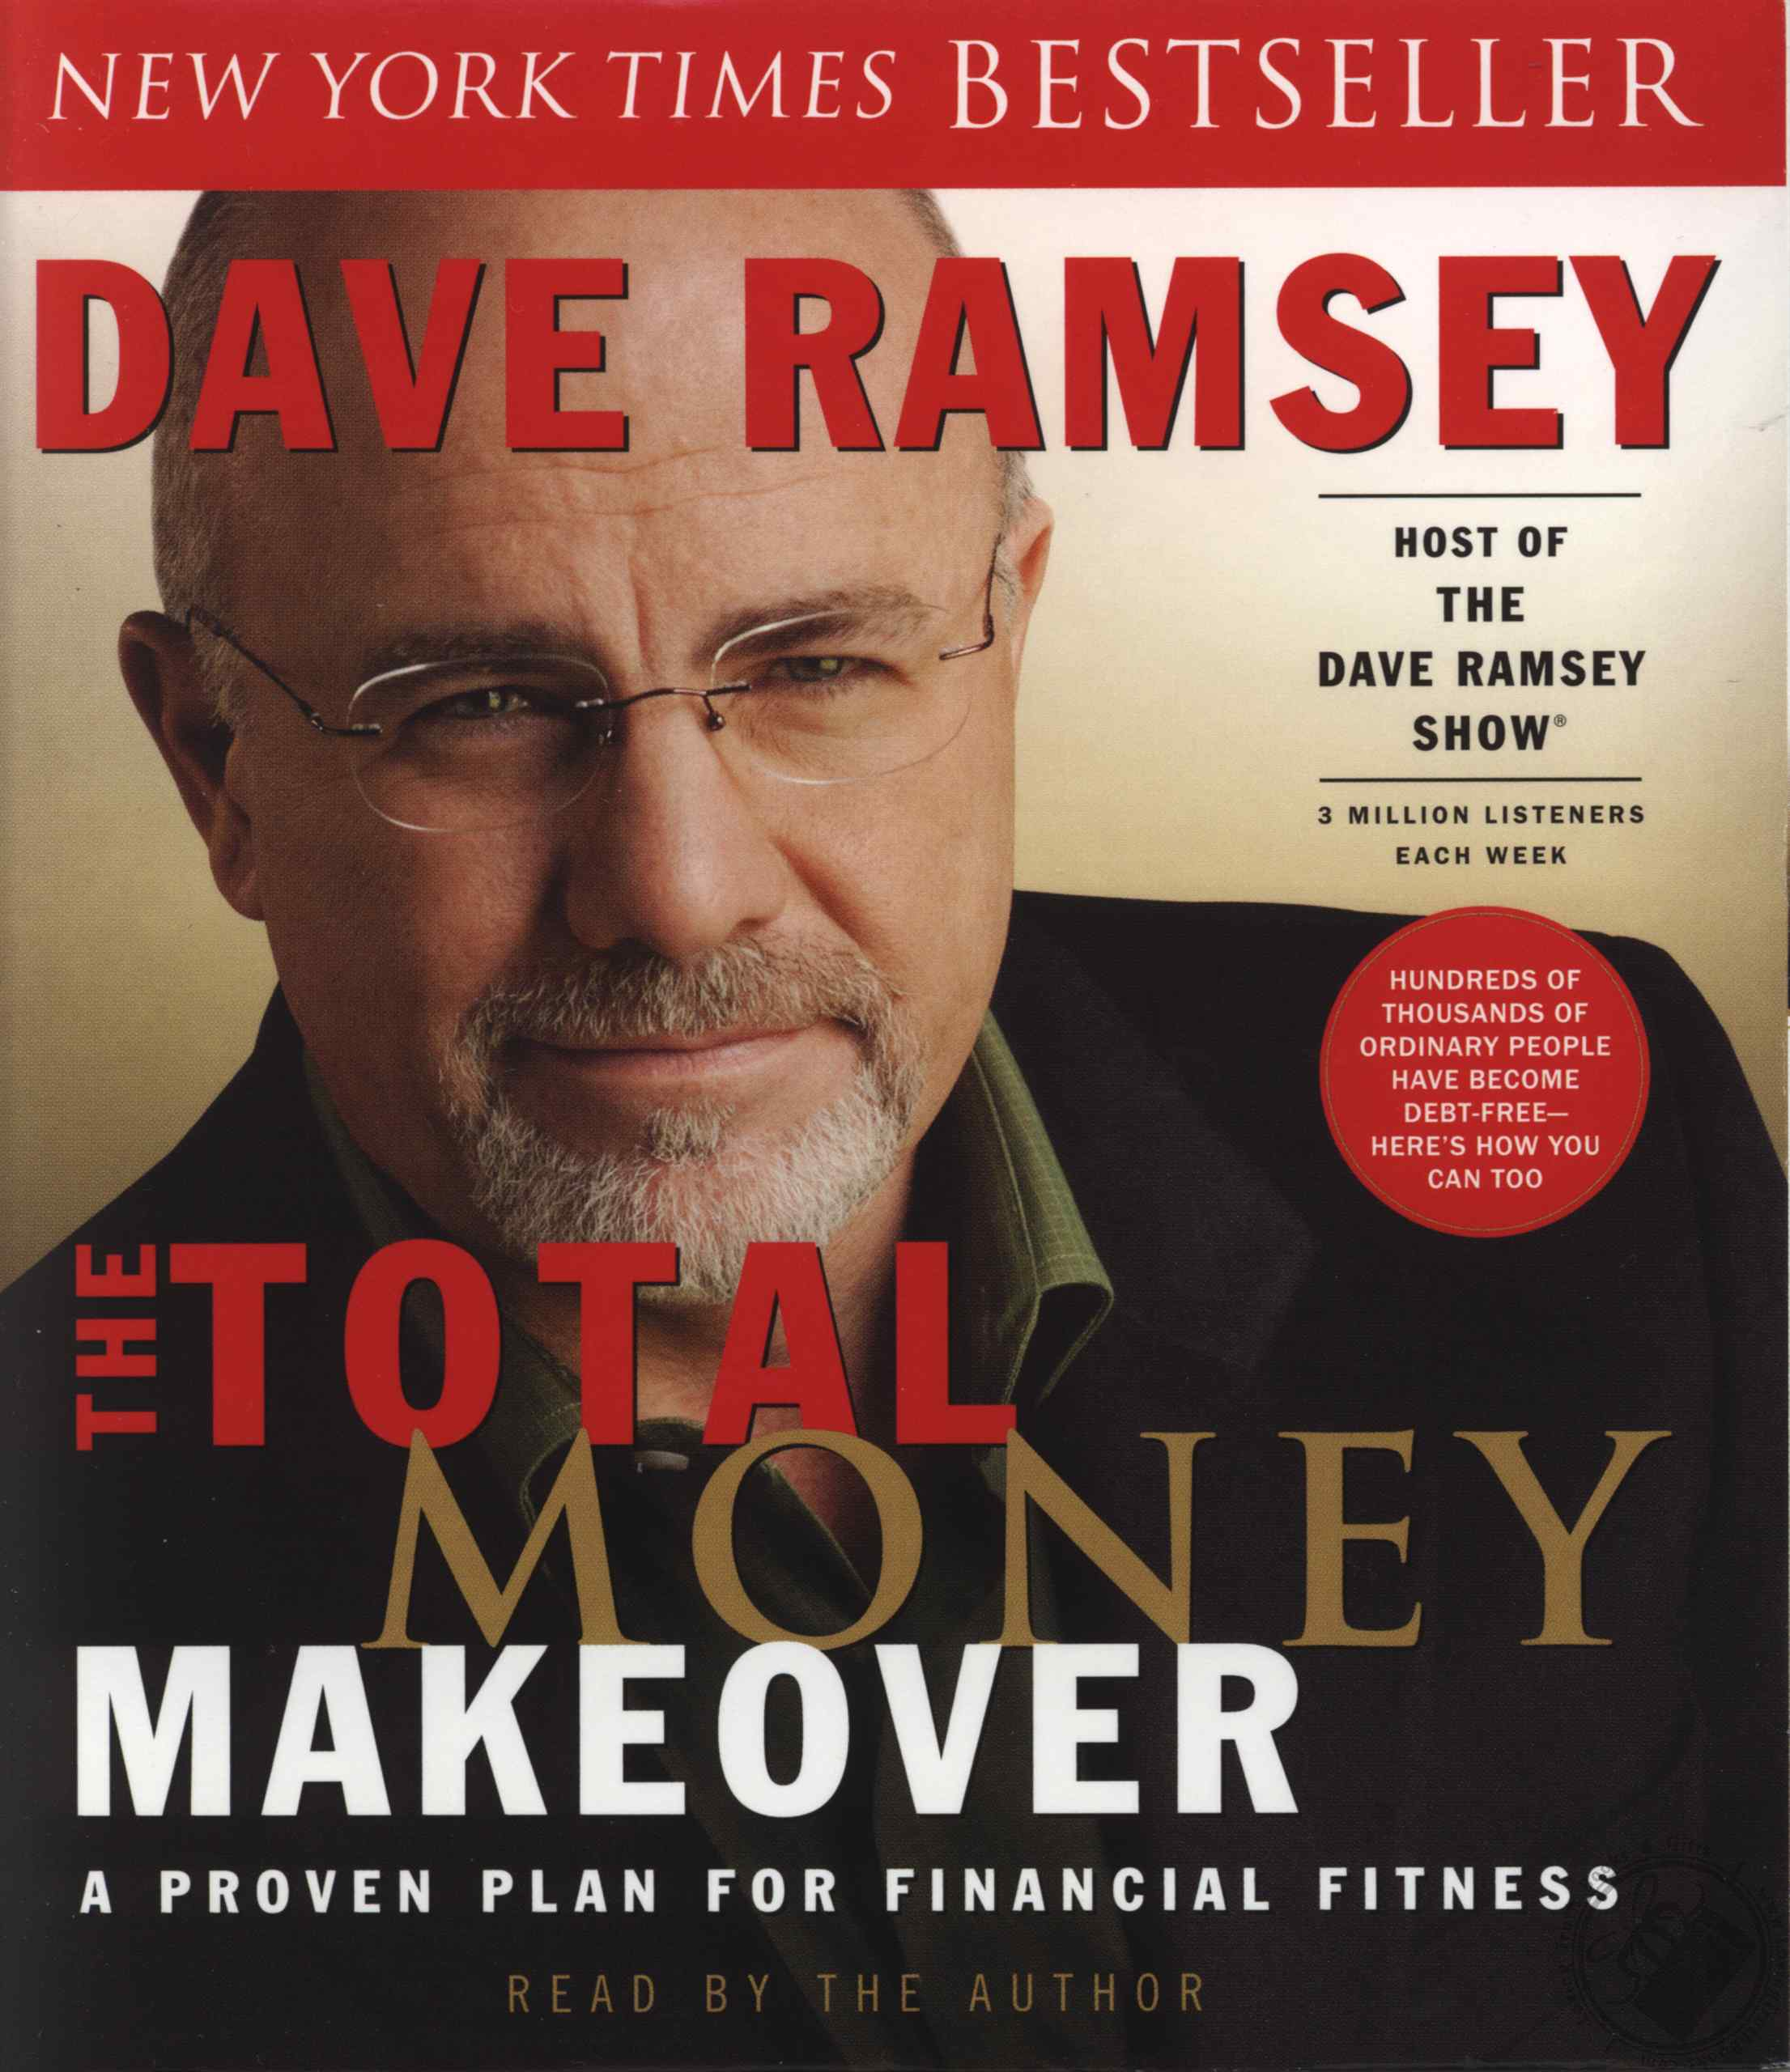 Dave Ramsey Total Money Makeover Audiobook Tracklist And